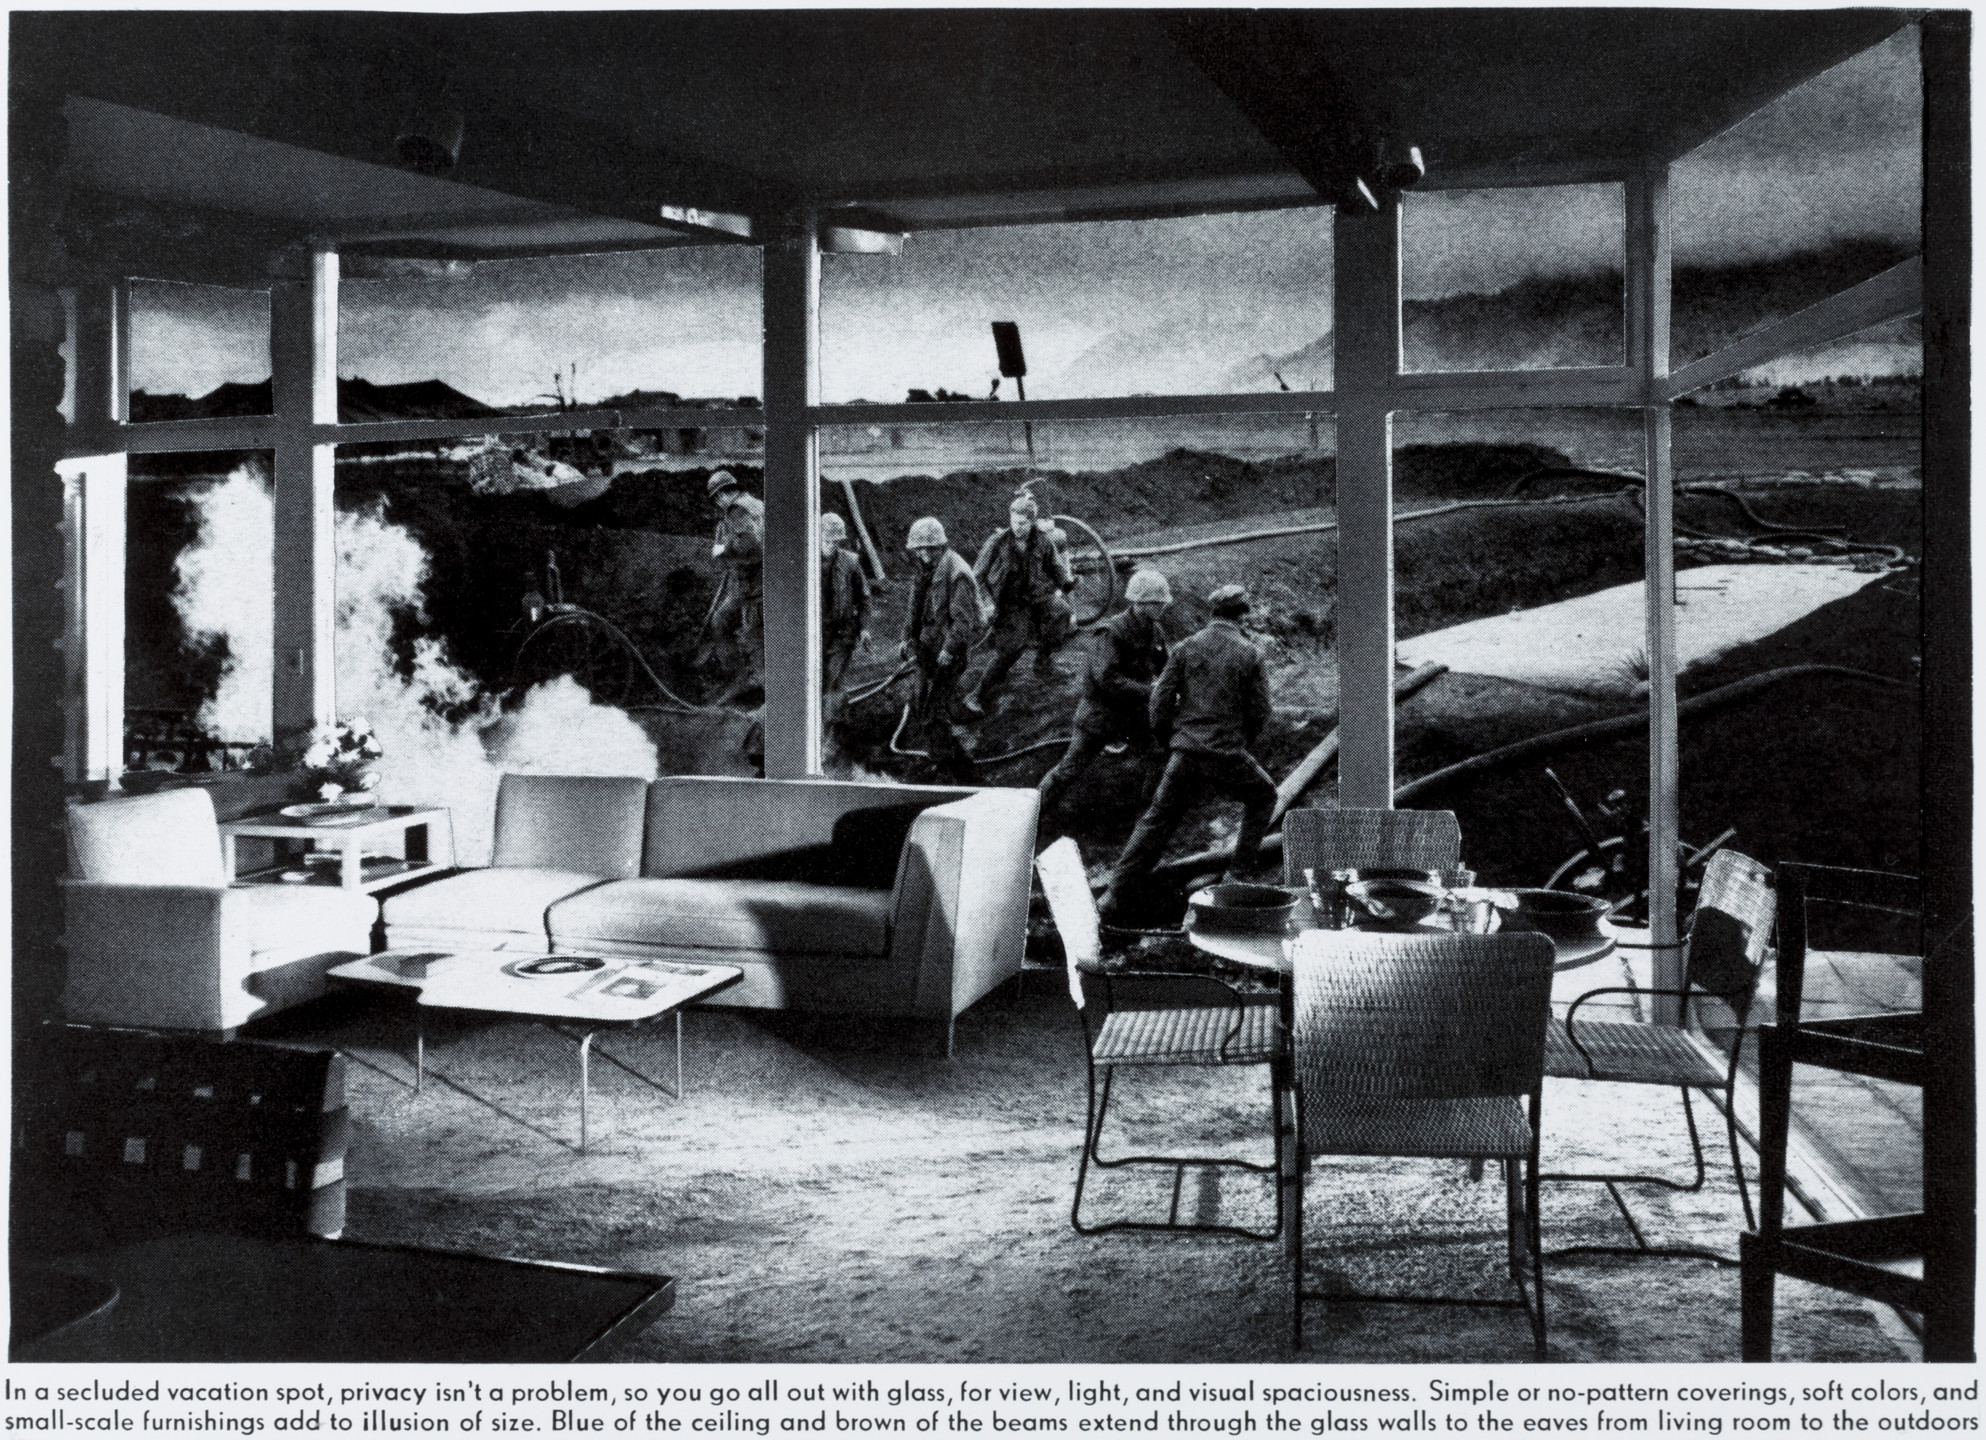 Martha Rosler. Vacation Getaway from the series House Beautiful: Bringing the War Home. c. 1967-72